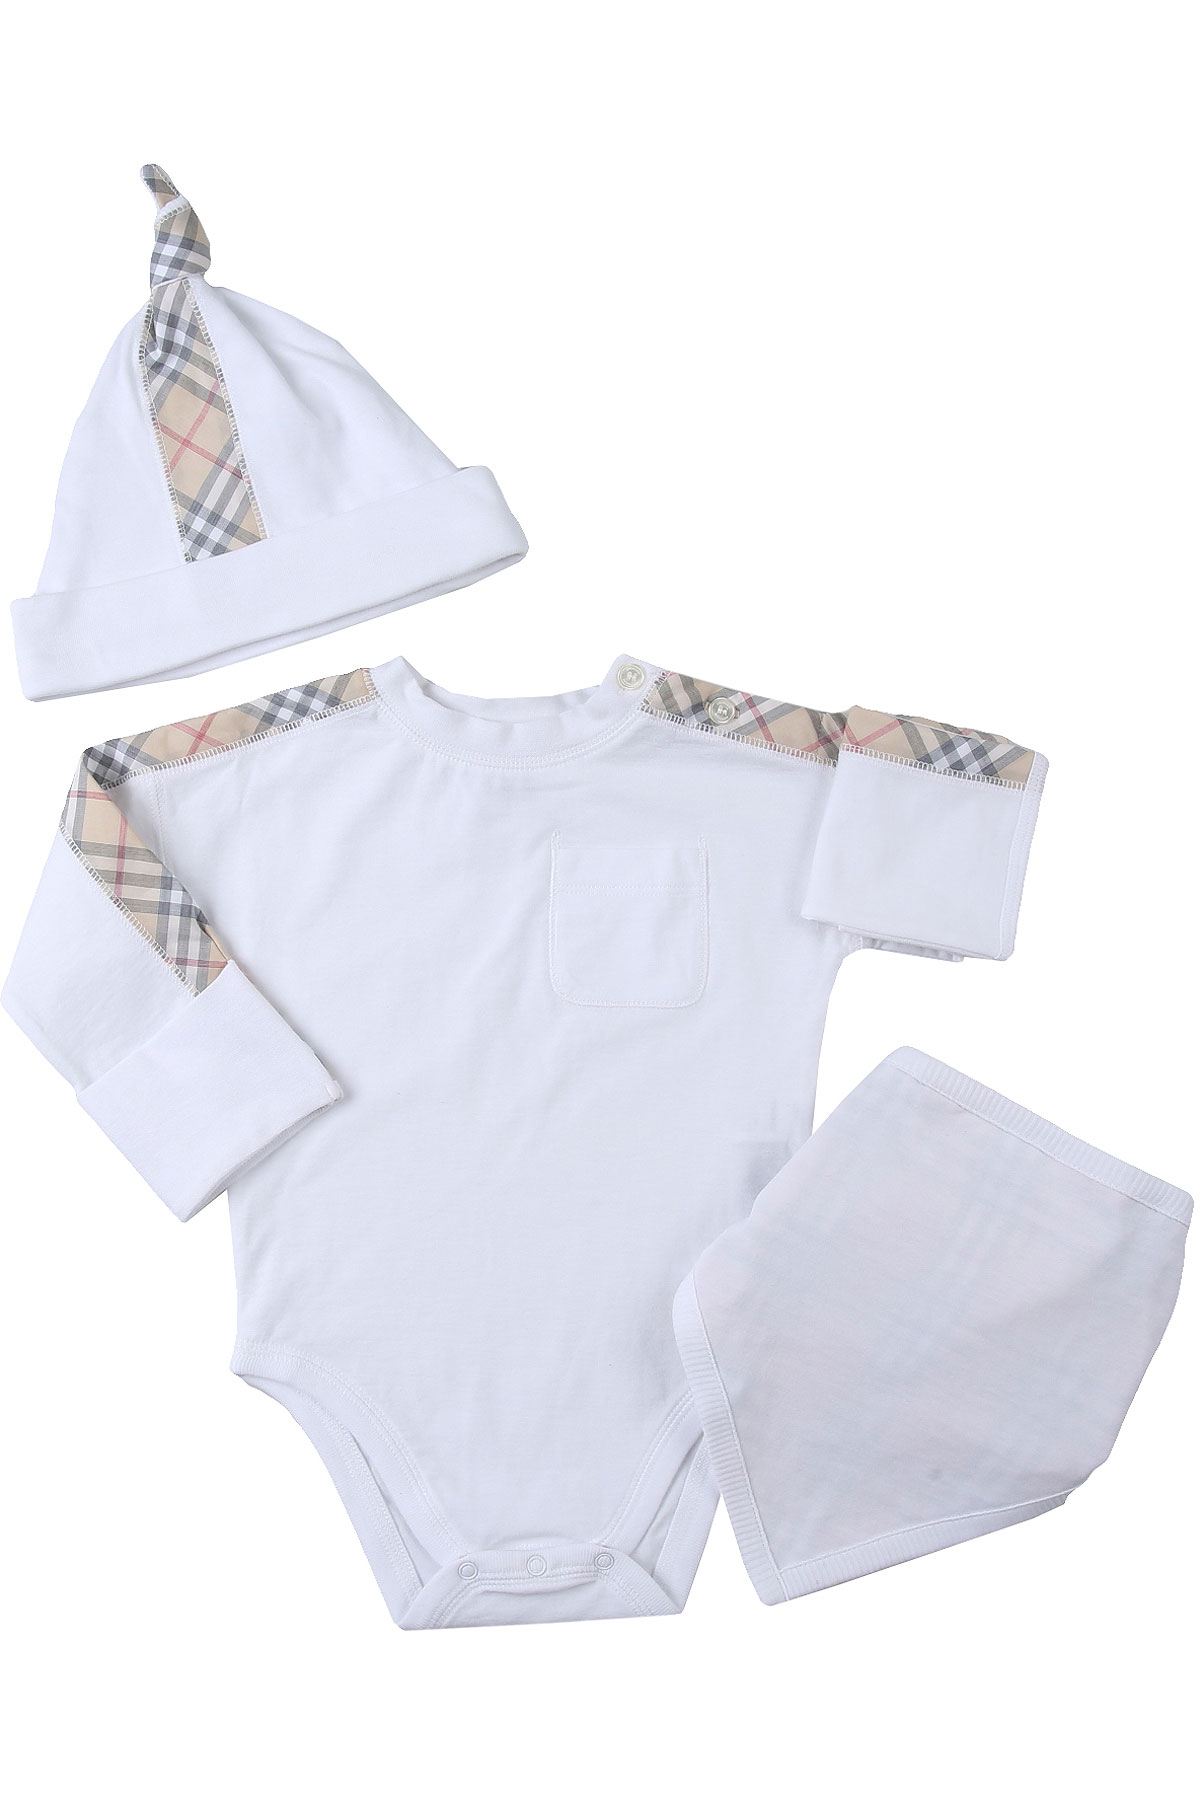 Burberry Baby Sets for Boys, White, Cotton, 2019, 1M 3M 6M